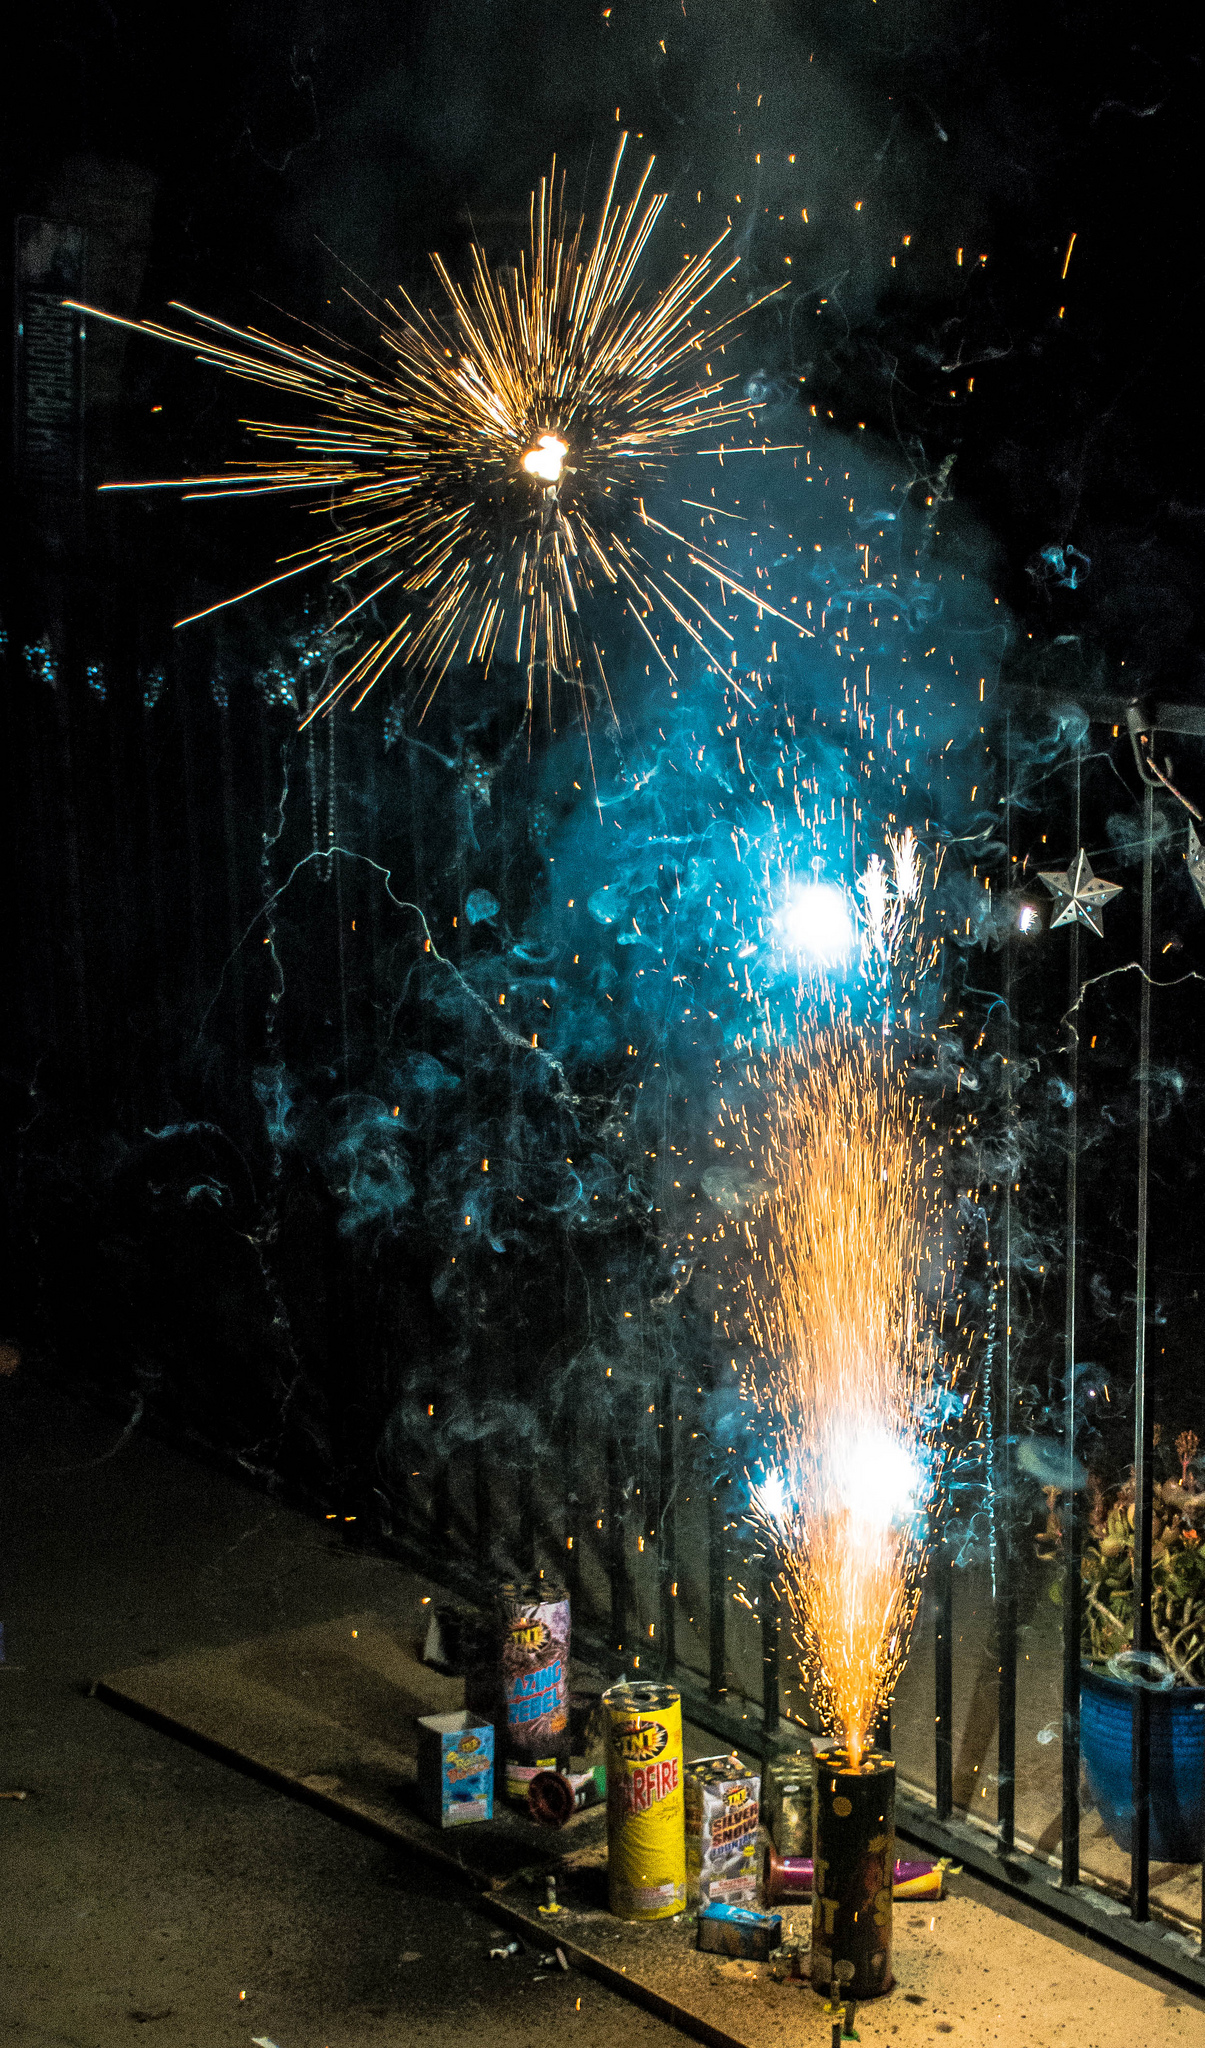 The Most Dangerous Firework You Can Buy